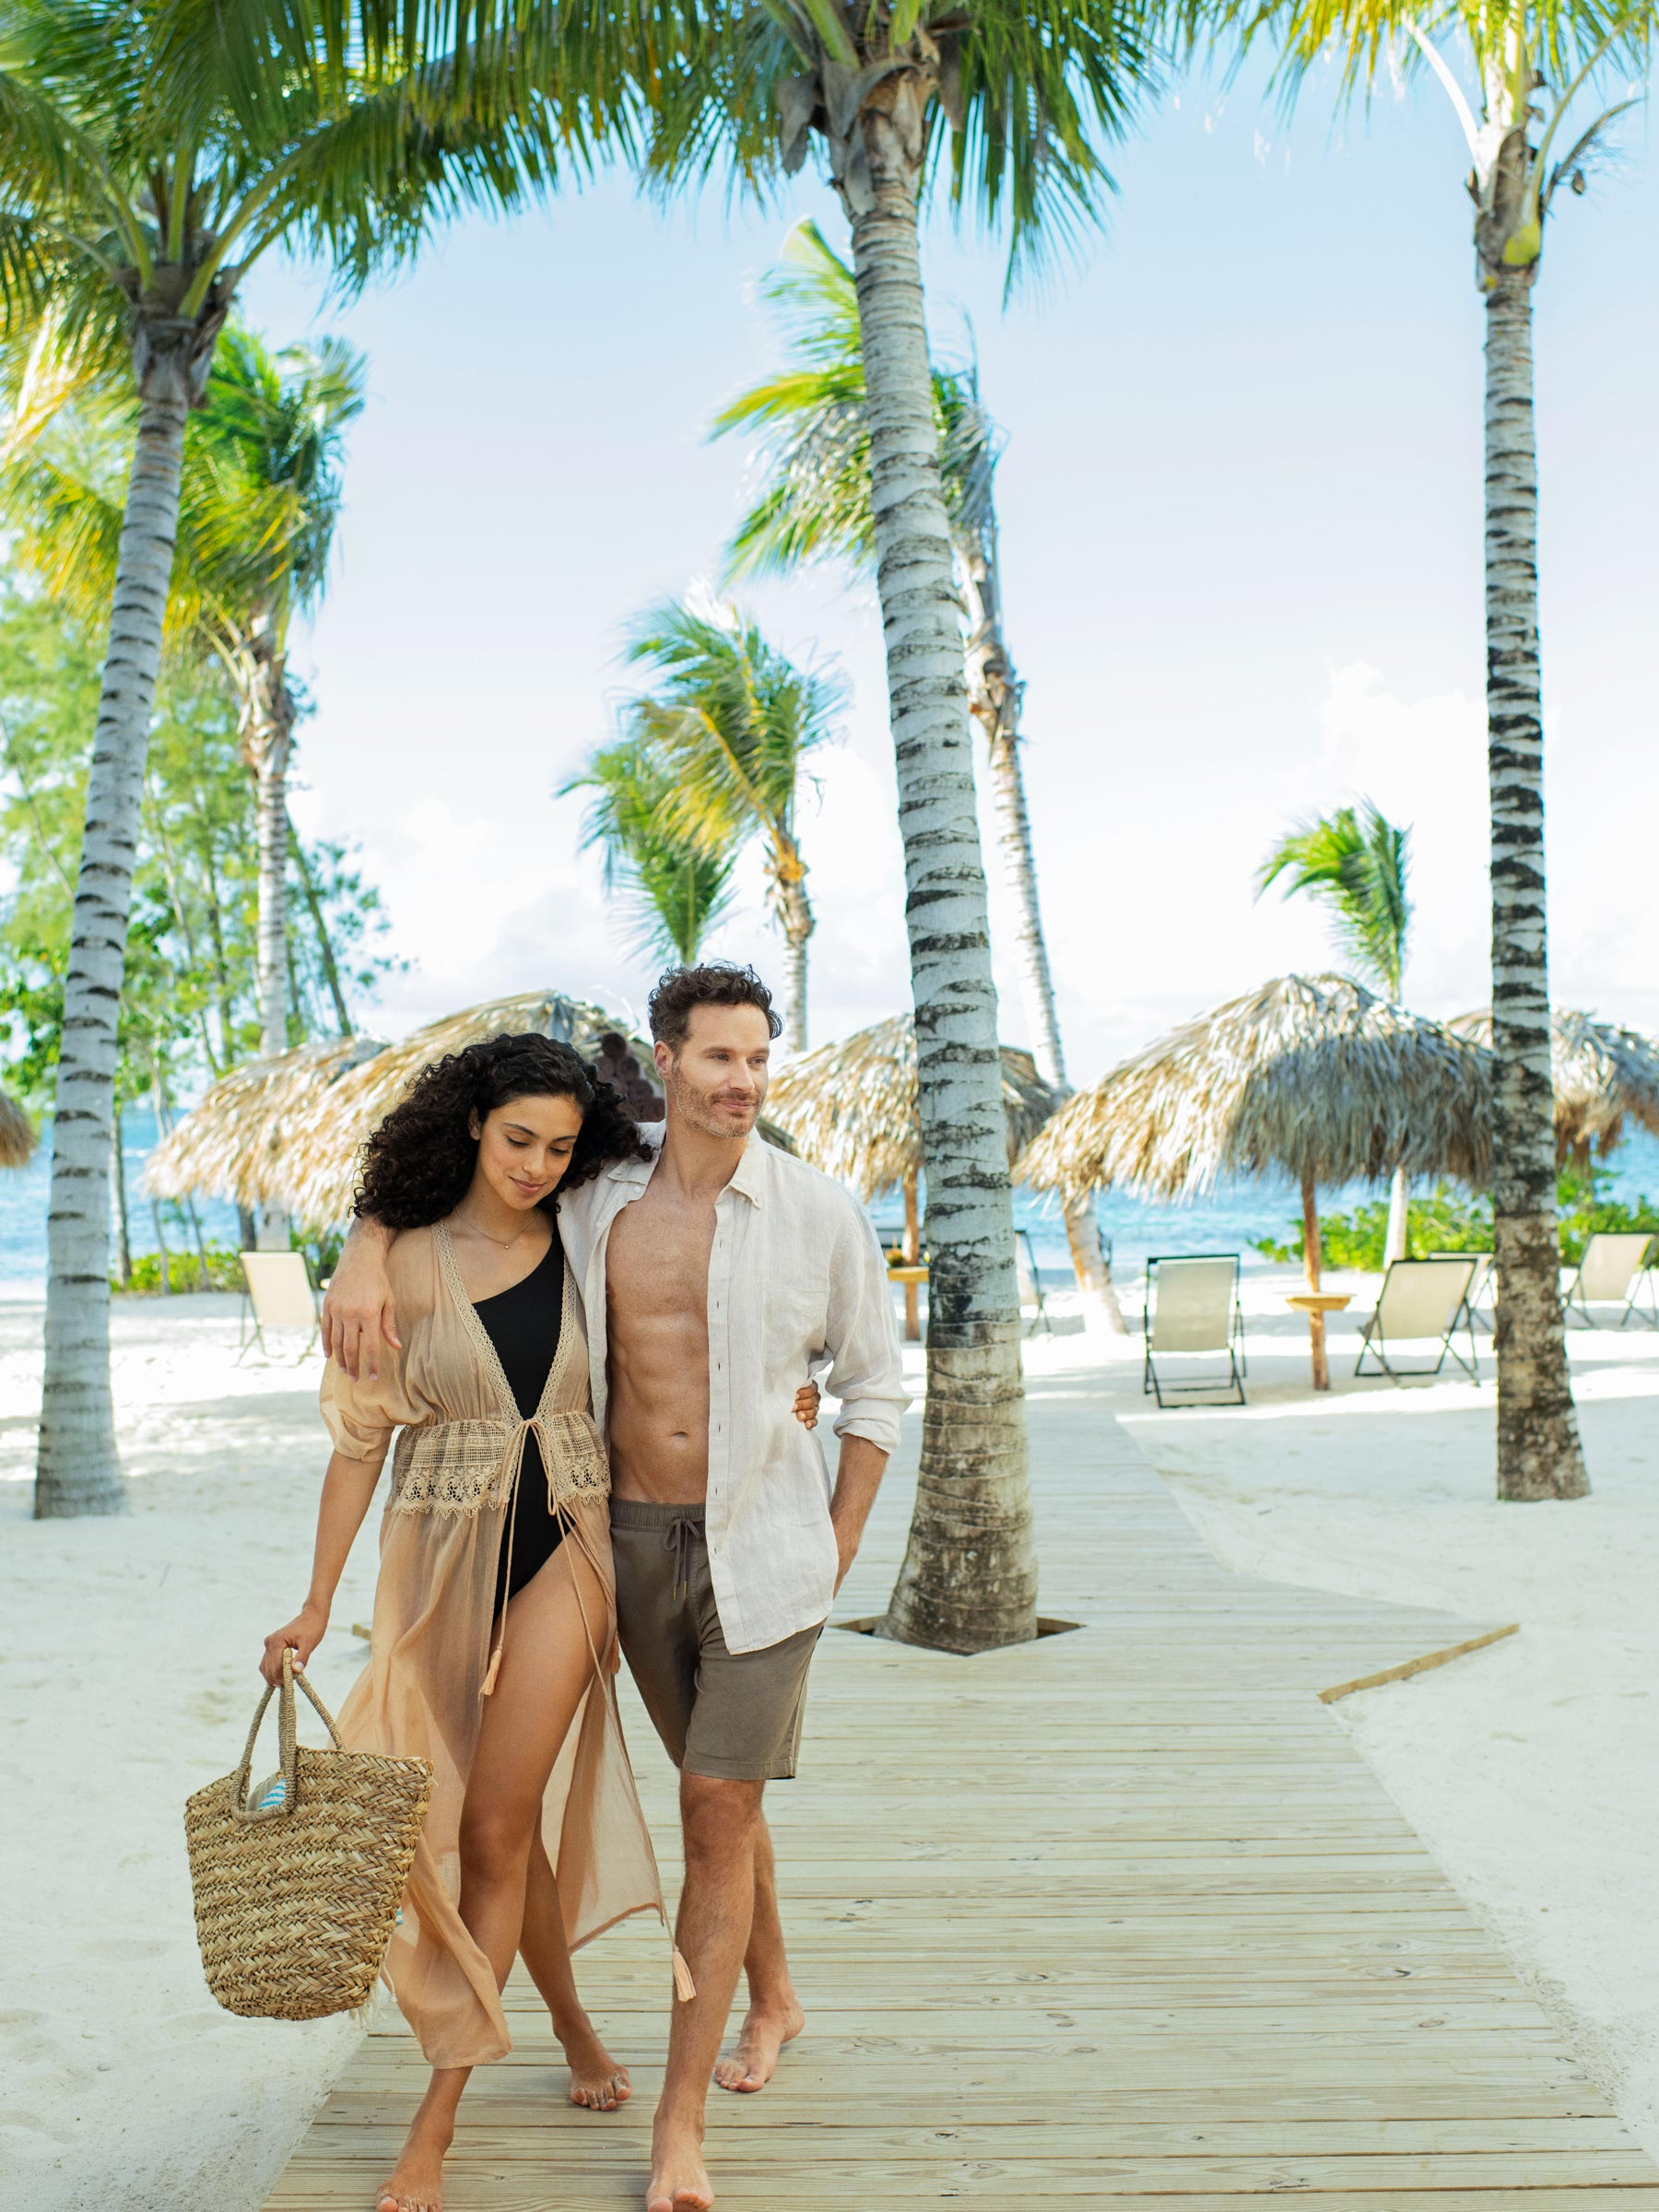 Romantic Beach Vacation in Jamaica